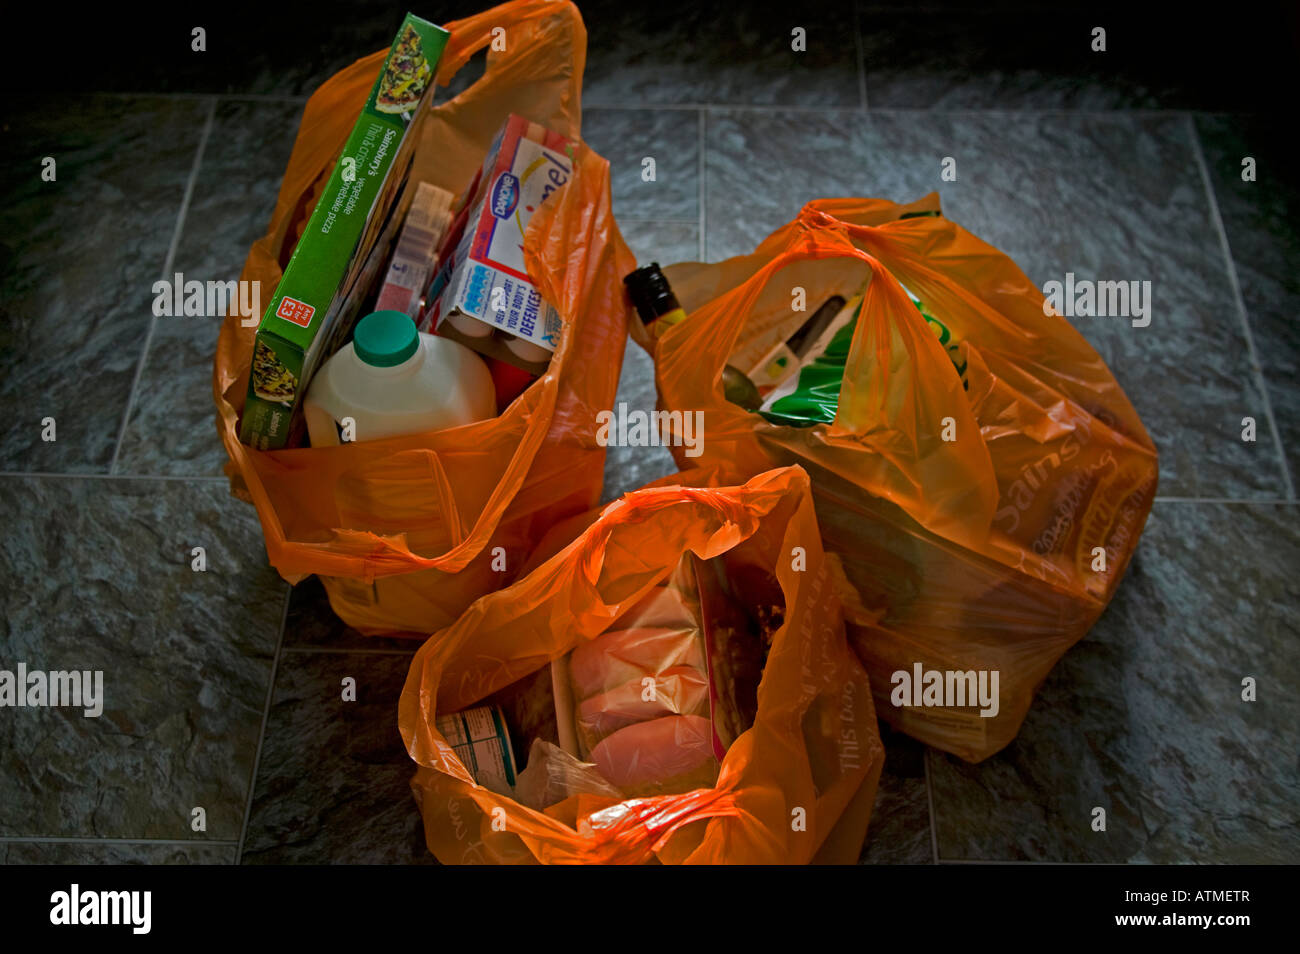 Orange plastic bags filled with shopping, an estimated 1.5bn bags have been used since UK government began phase - Stock Image